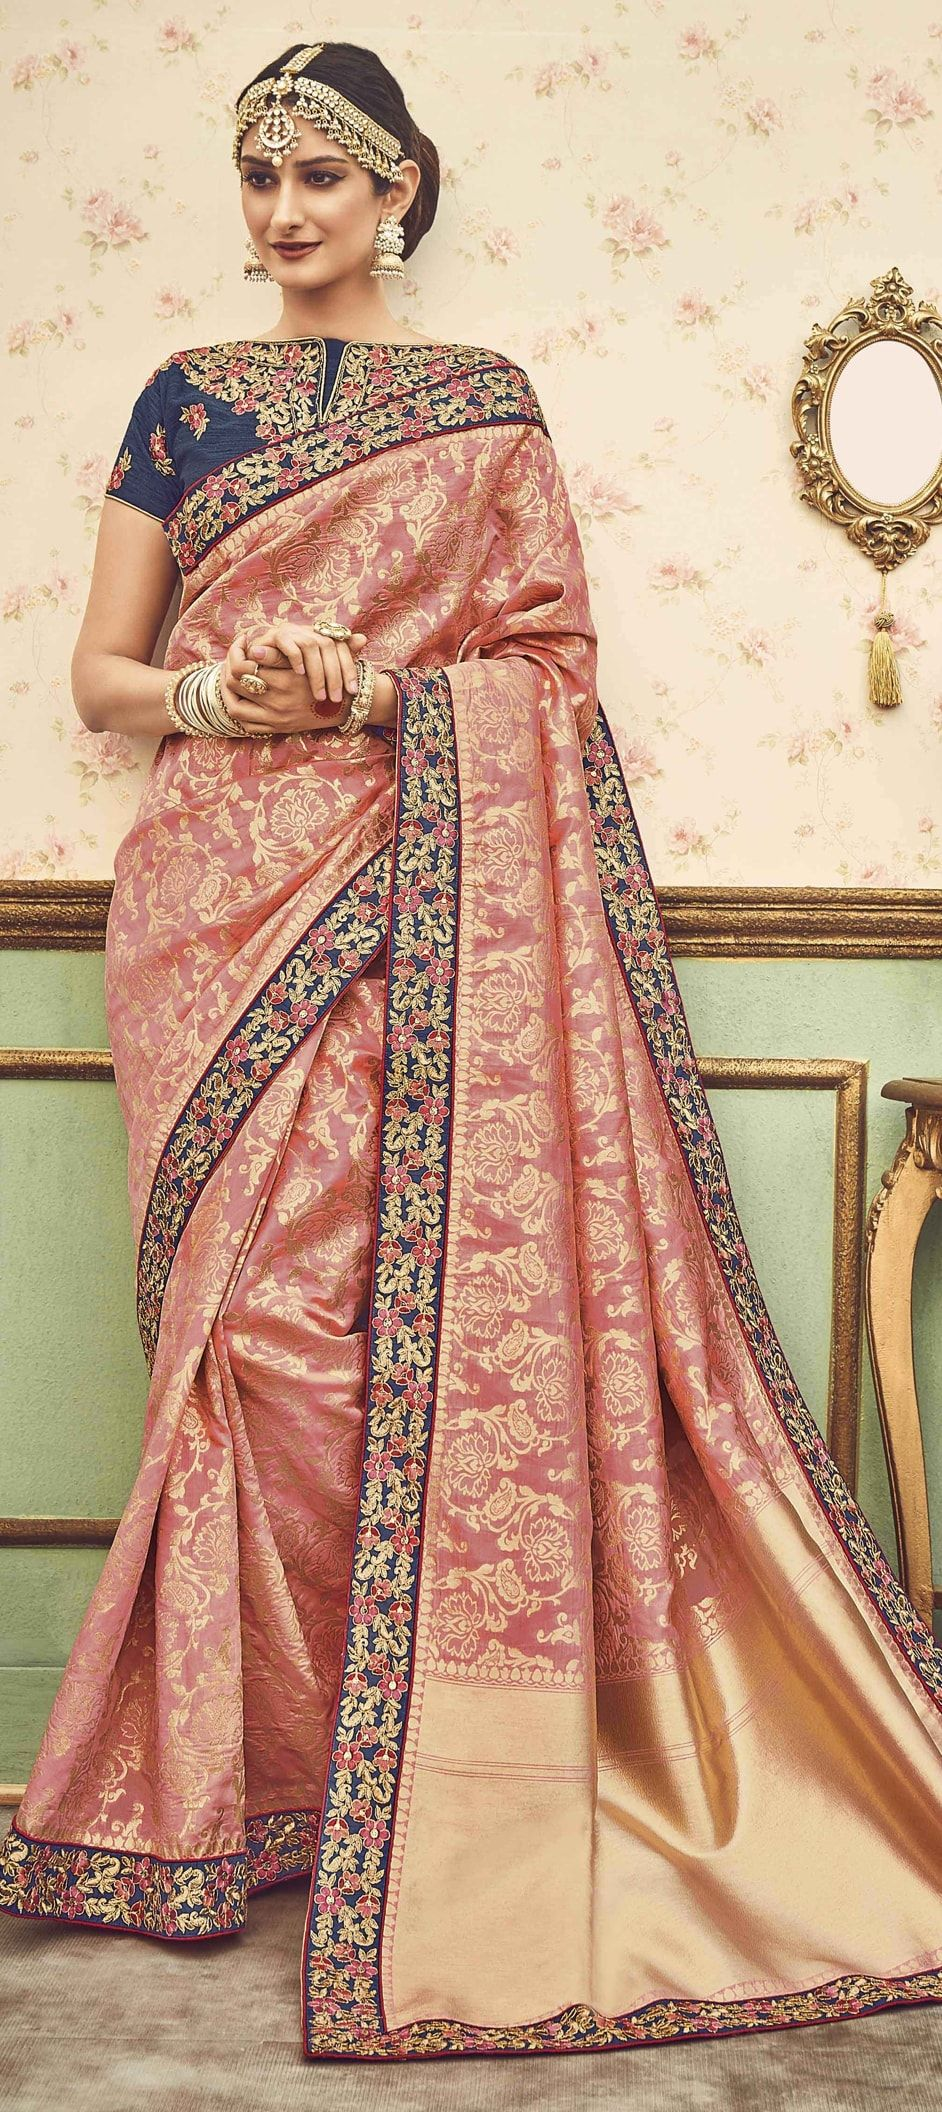 ef10f682d95707 769933 Pink and Majenta color family Party Wear Sarees in Silk fabric with  Border, Thread work with matching unstitched blouse.